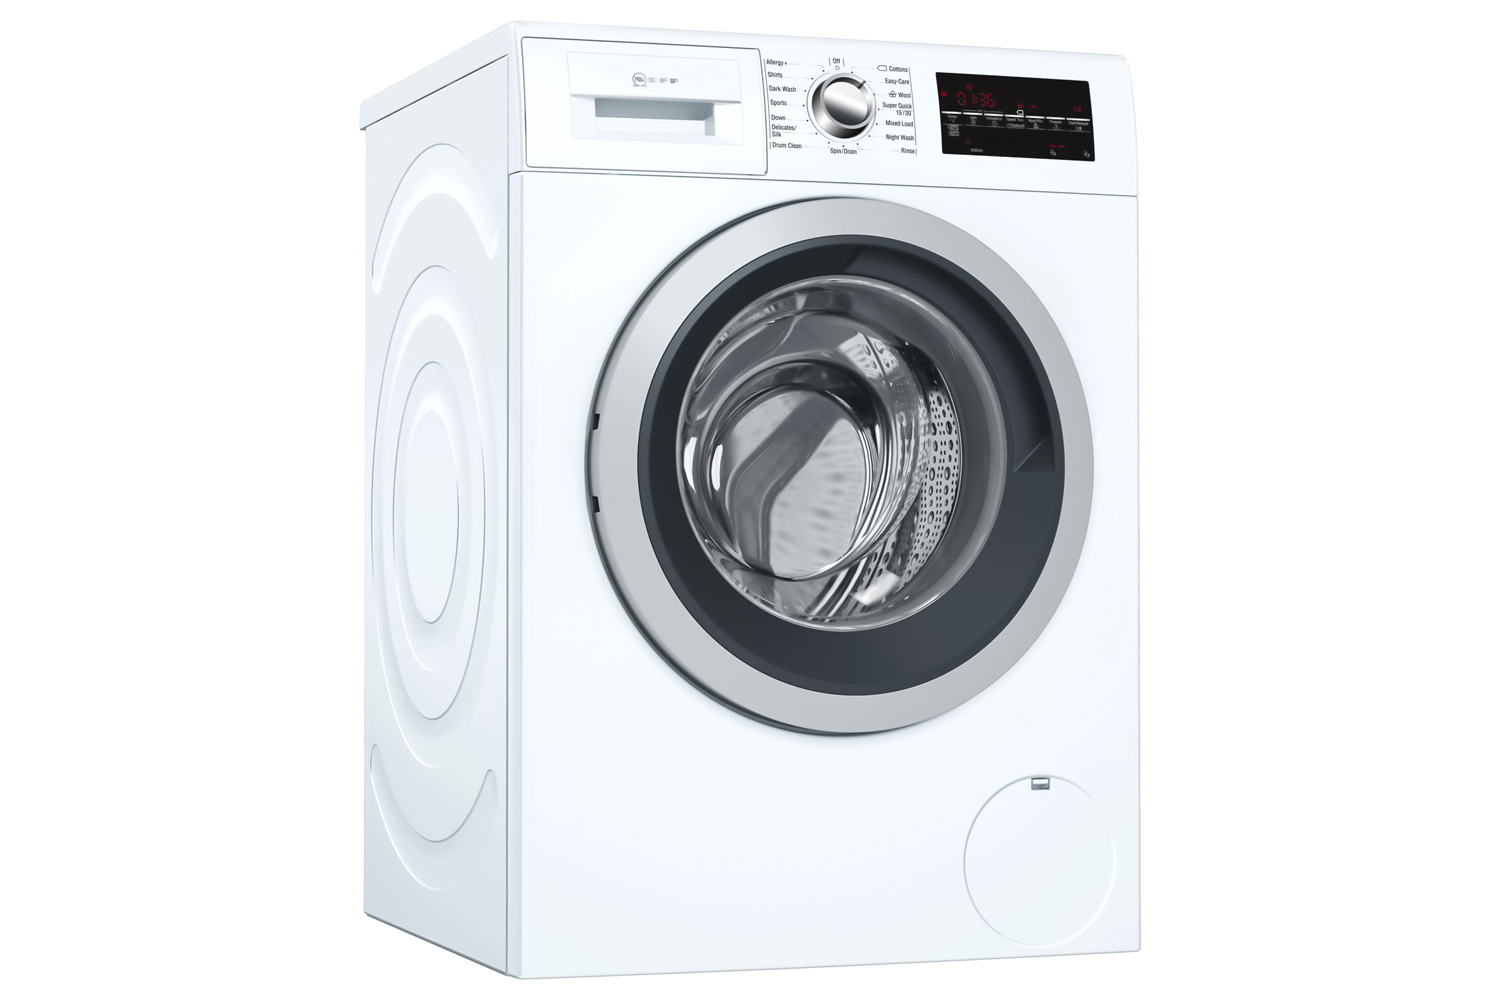 Neff 9kg Freestanding Washing Machine W7460x4gb Ireland